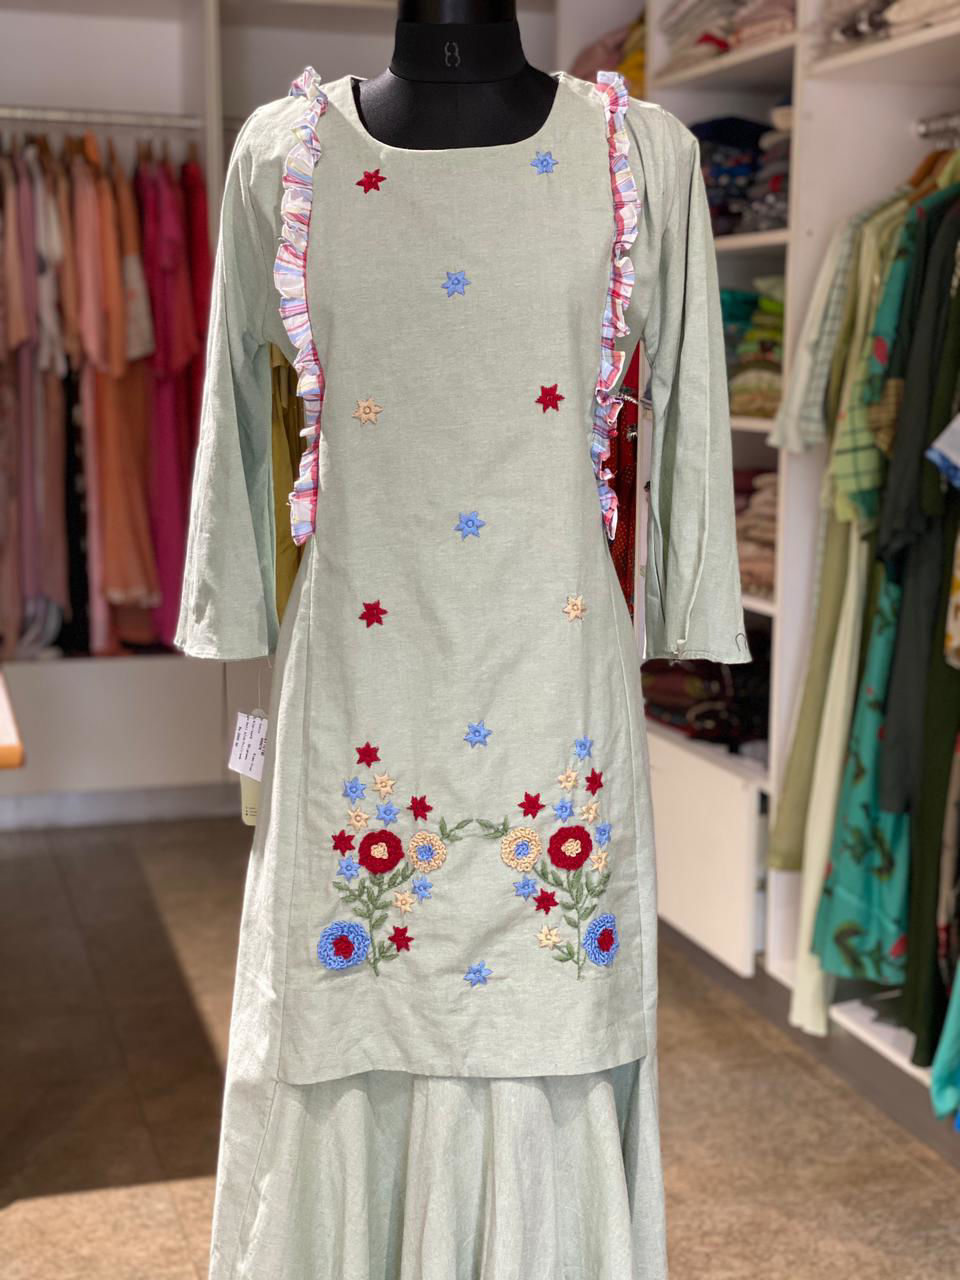 Picture of Long one piece dress style tunic with embroidery...checks frill for styling